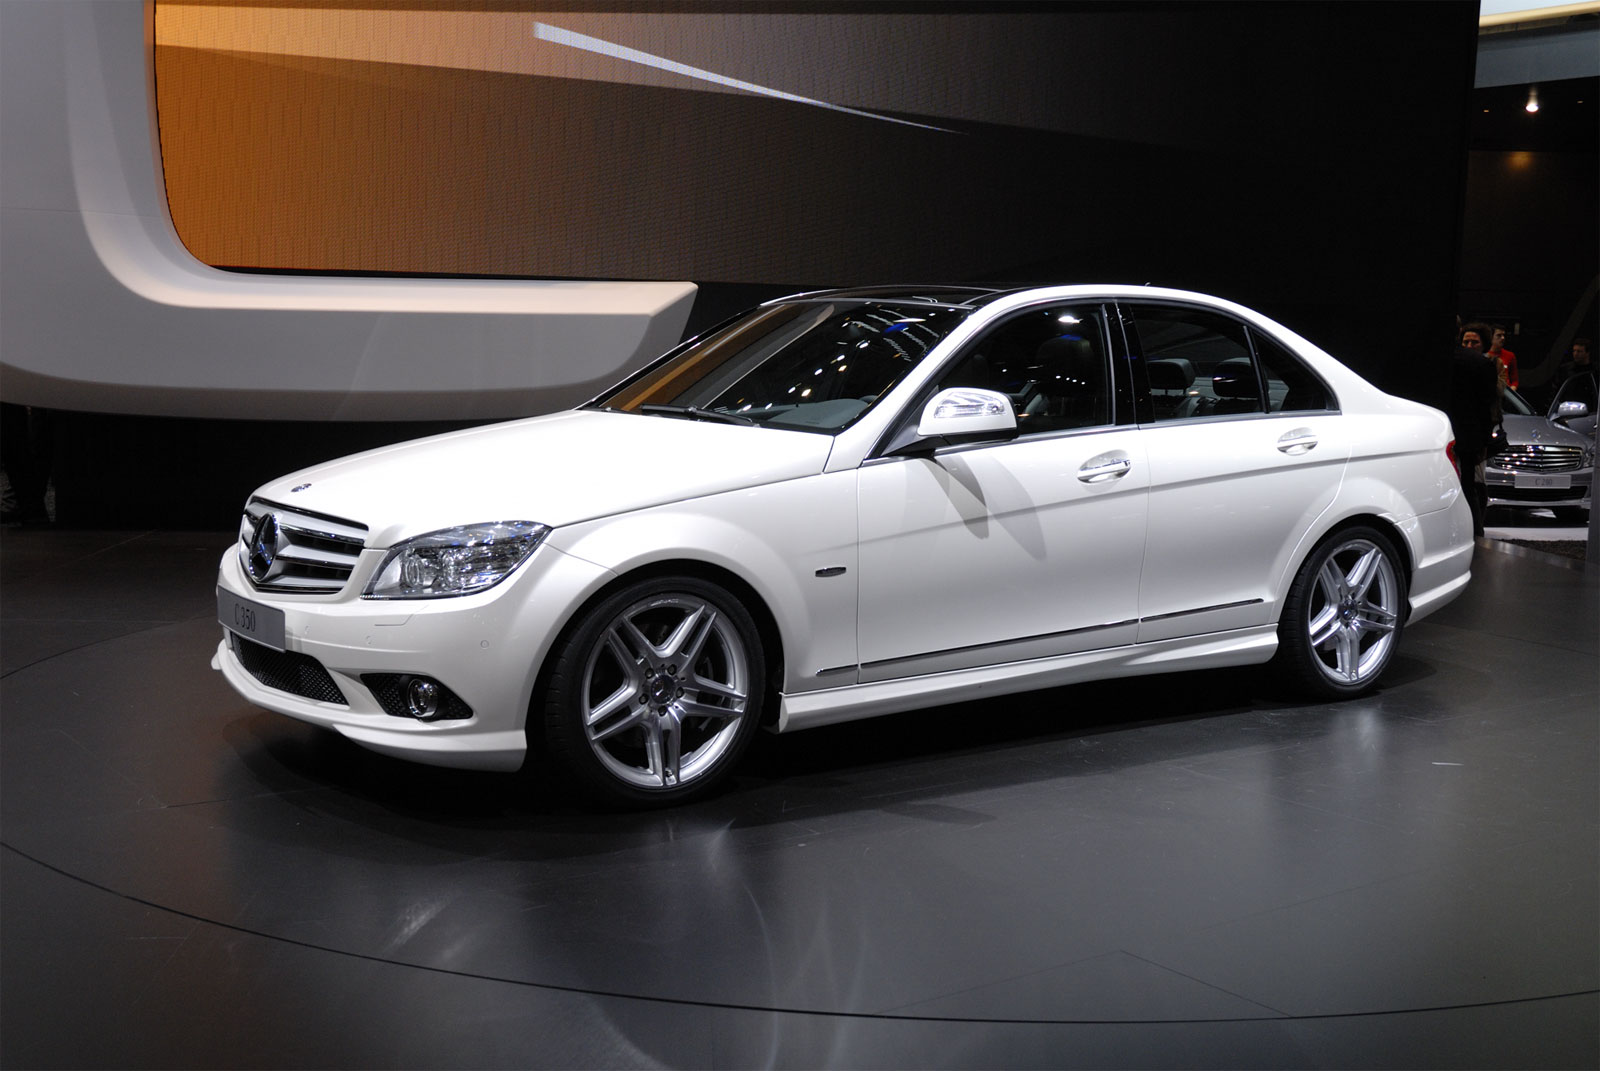 mercedes benz c 350 technical details history photos on. Black Bedroom Furniture Sets. Home Design Ideas